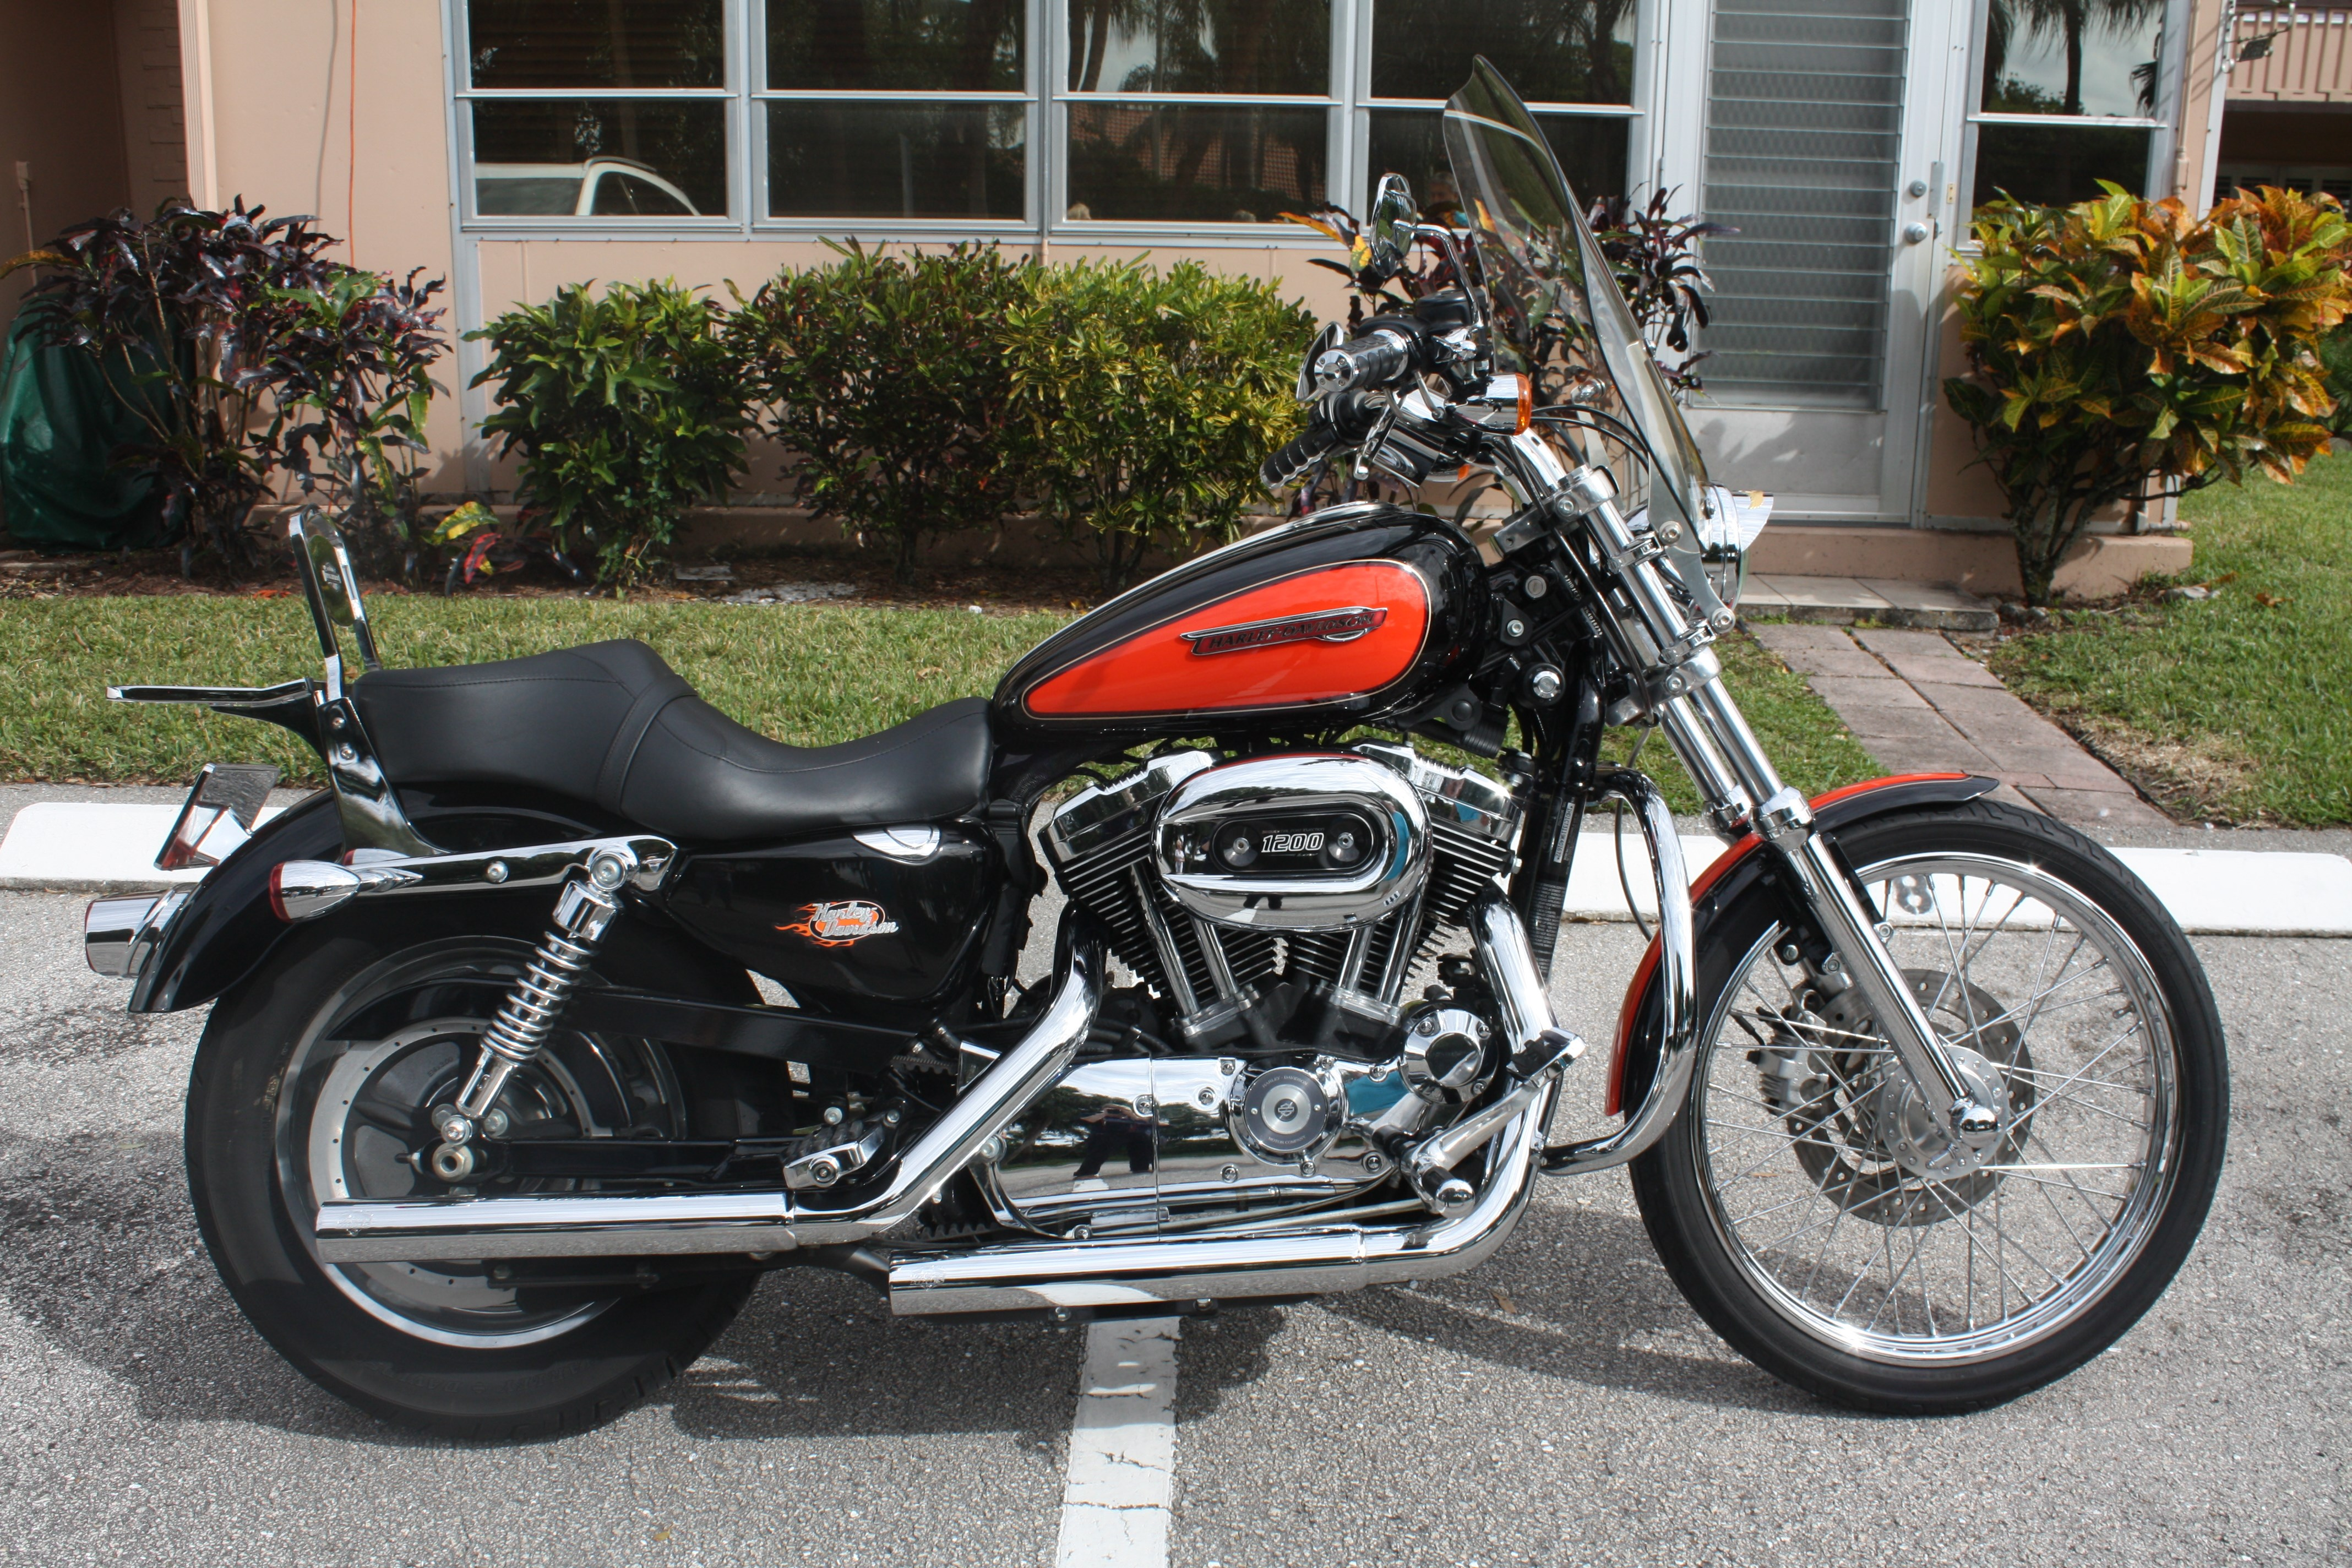 2009 harley davidson xl1200c sportster 1200 custom black and orange delray beach florida. Black Bedroom Furniture Sets. Home Design Ideas